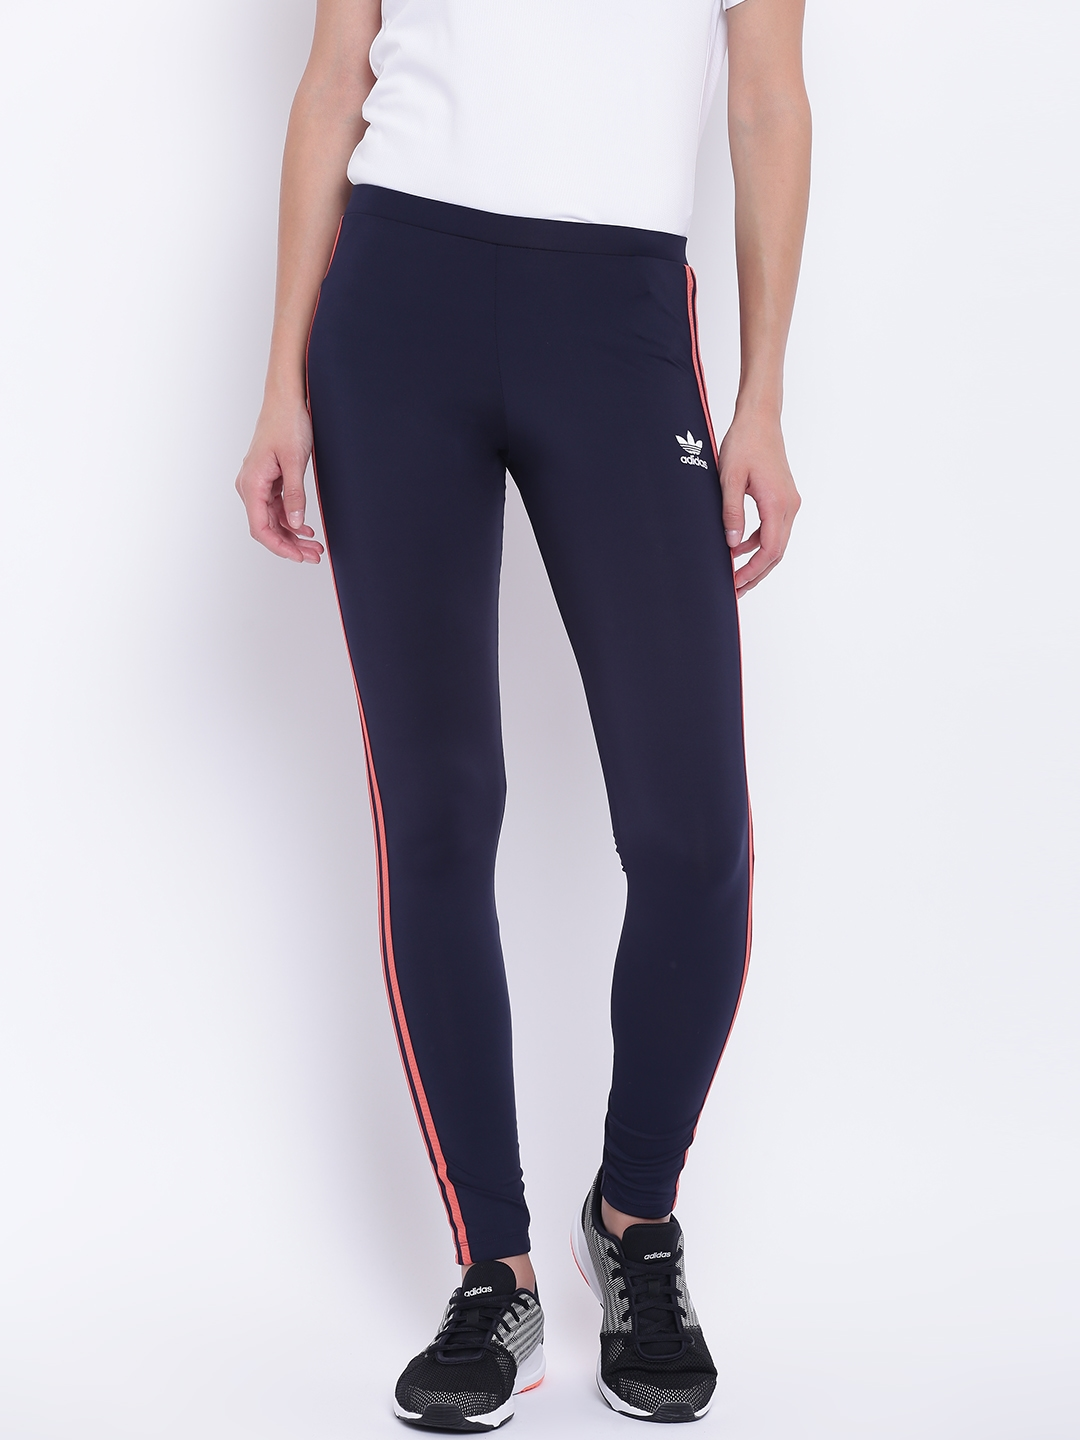 40b2e4d10d79b Buy ADIDAS Originals Women Navy Blue Active Icons Tights - Tights ...